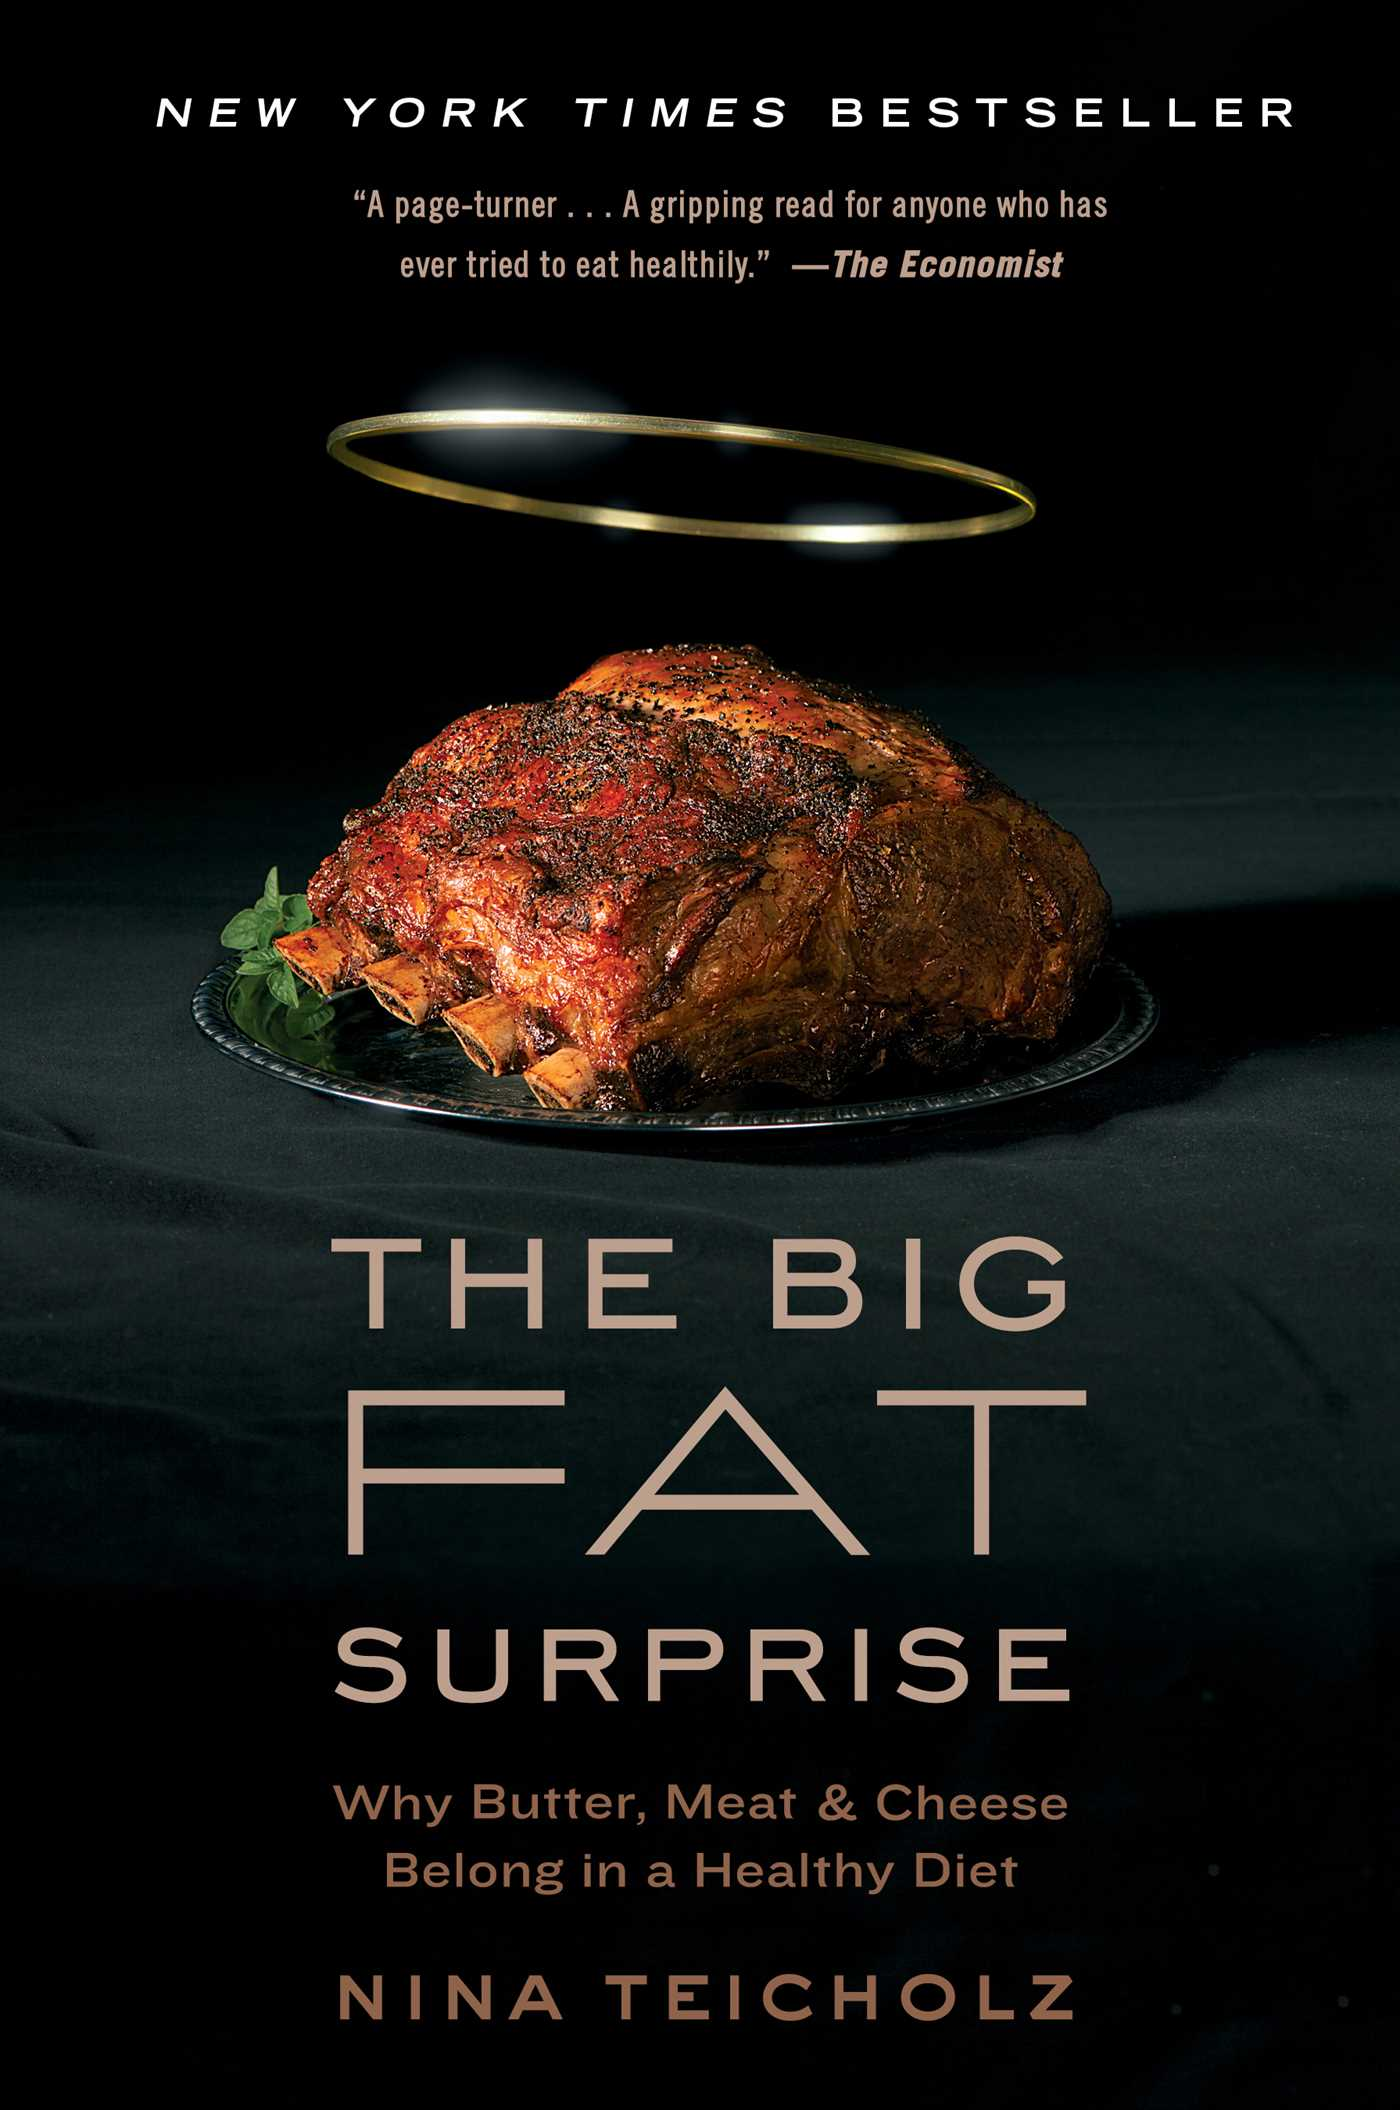 Big fat surprise 9781451624434 hr